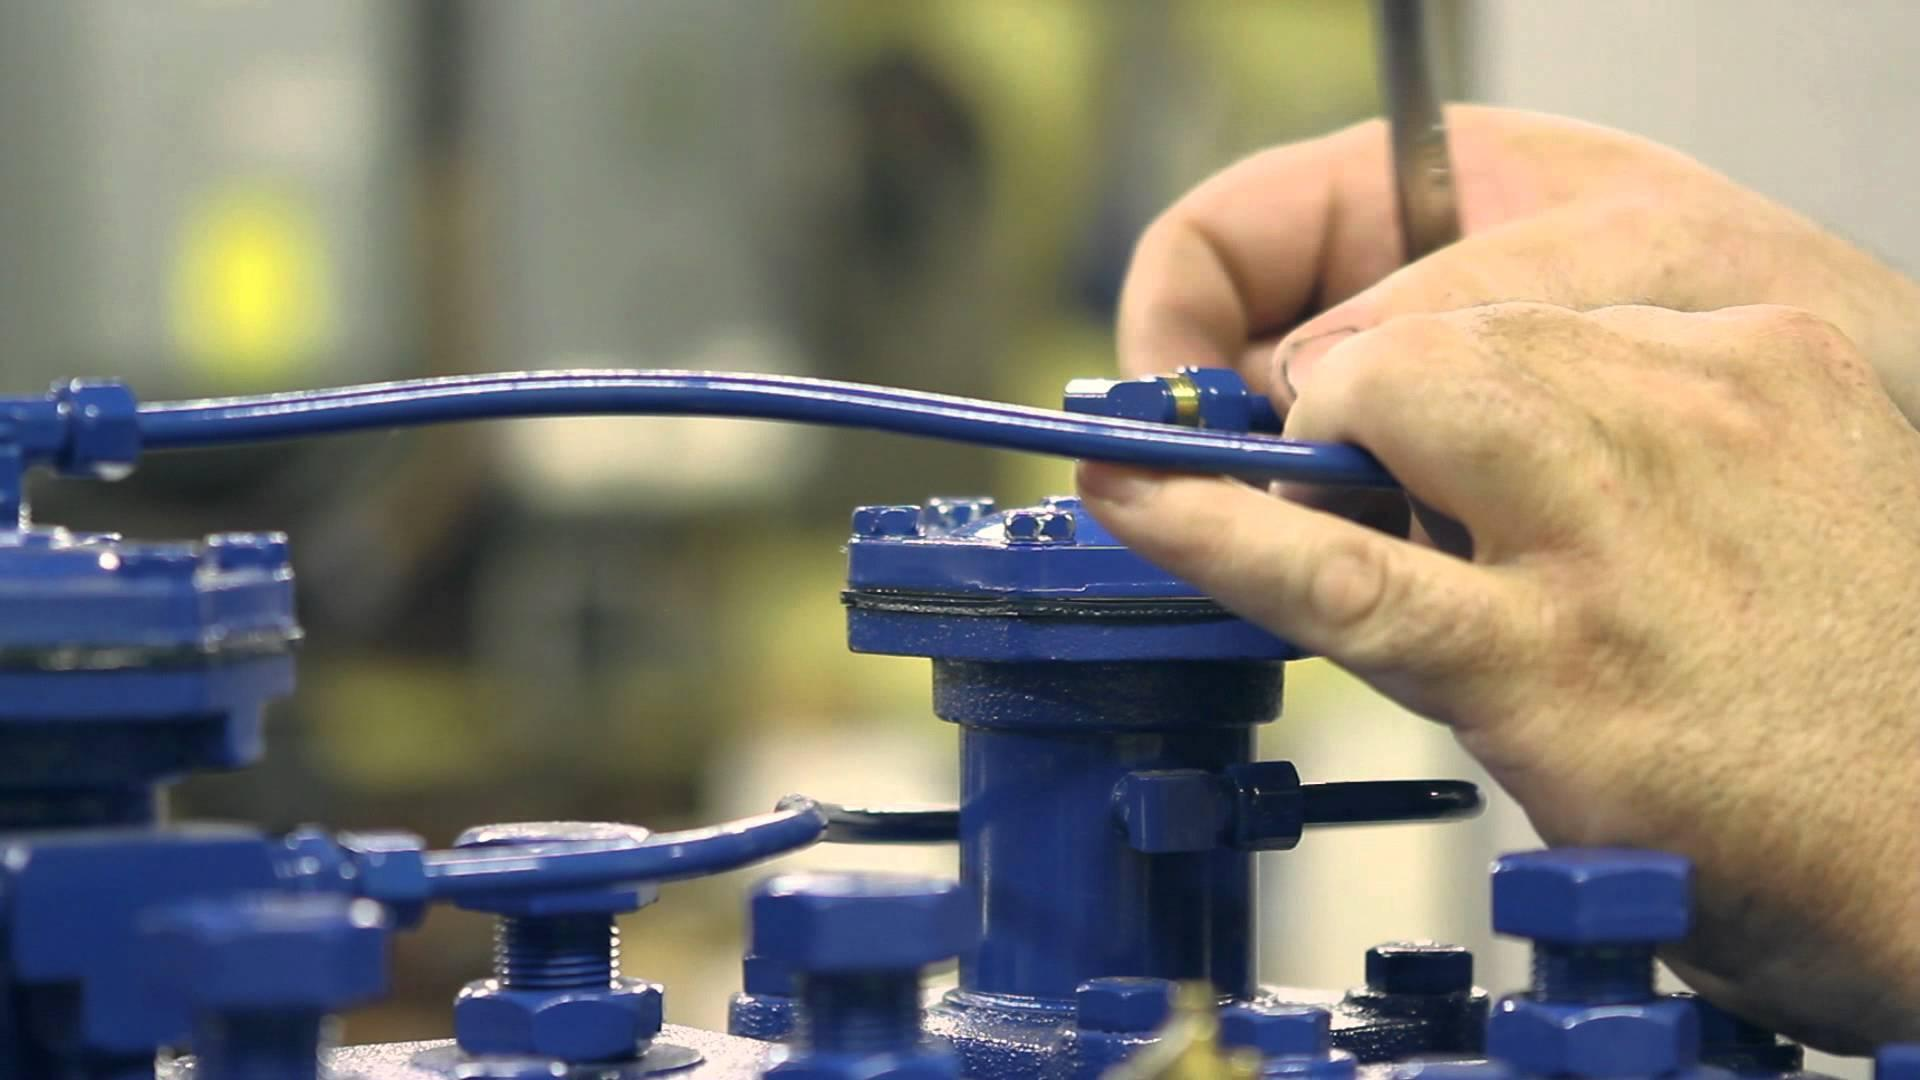 a25.How-to-Replace-the-Safety-Valve-on-a